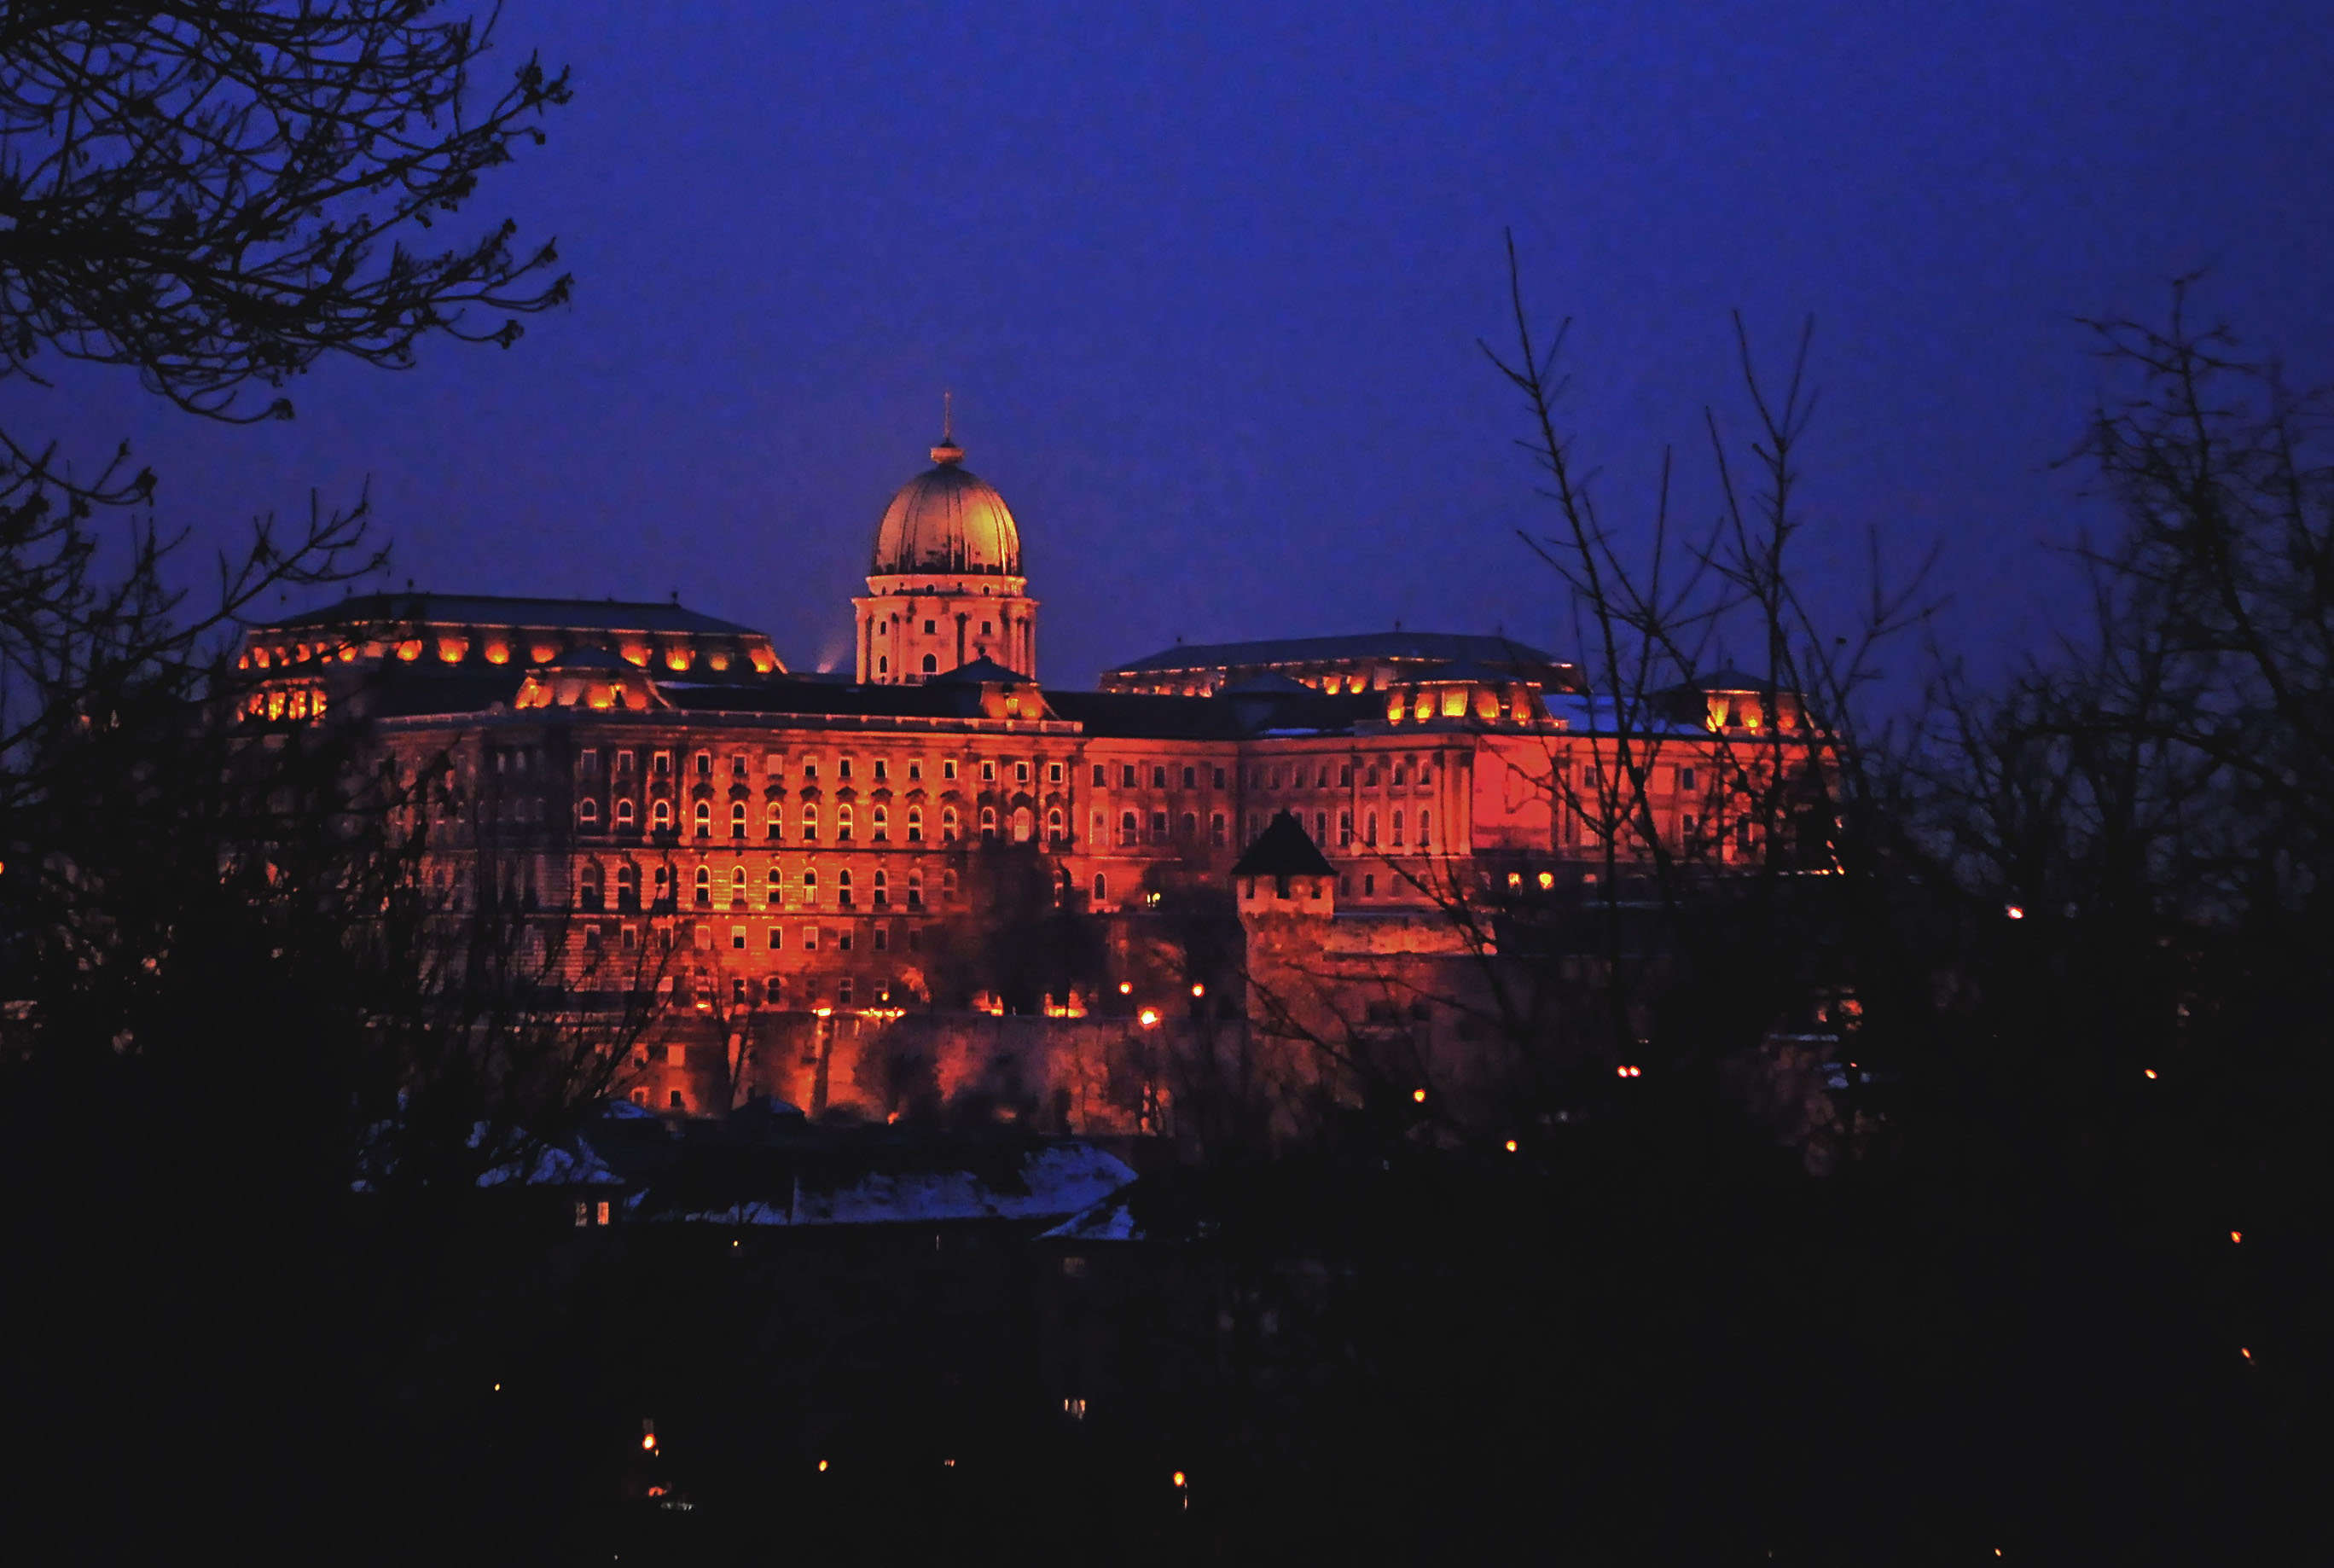 budapest-13-parliament-at-night